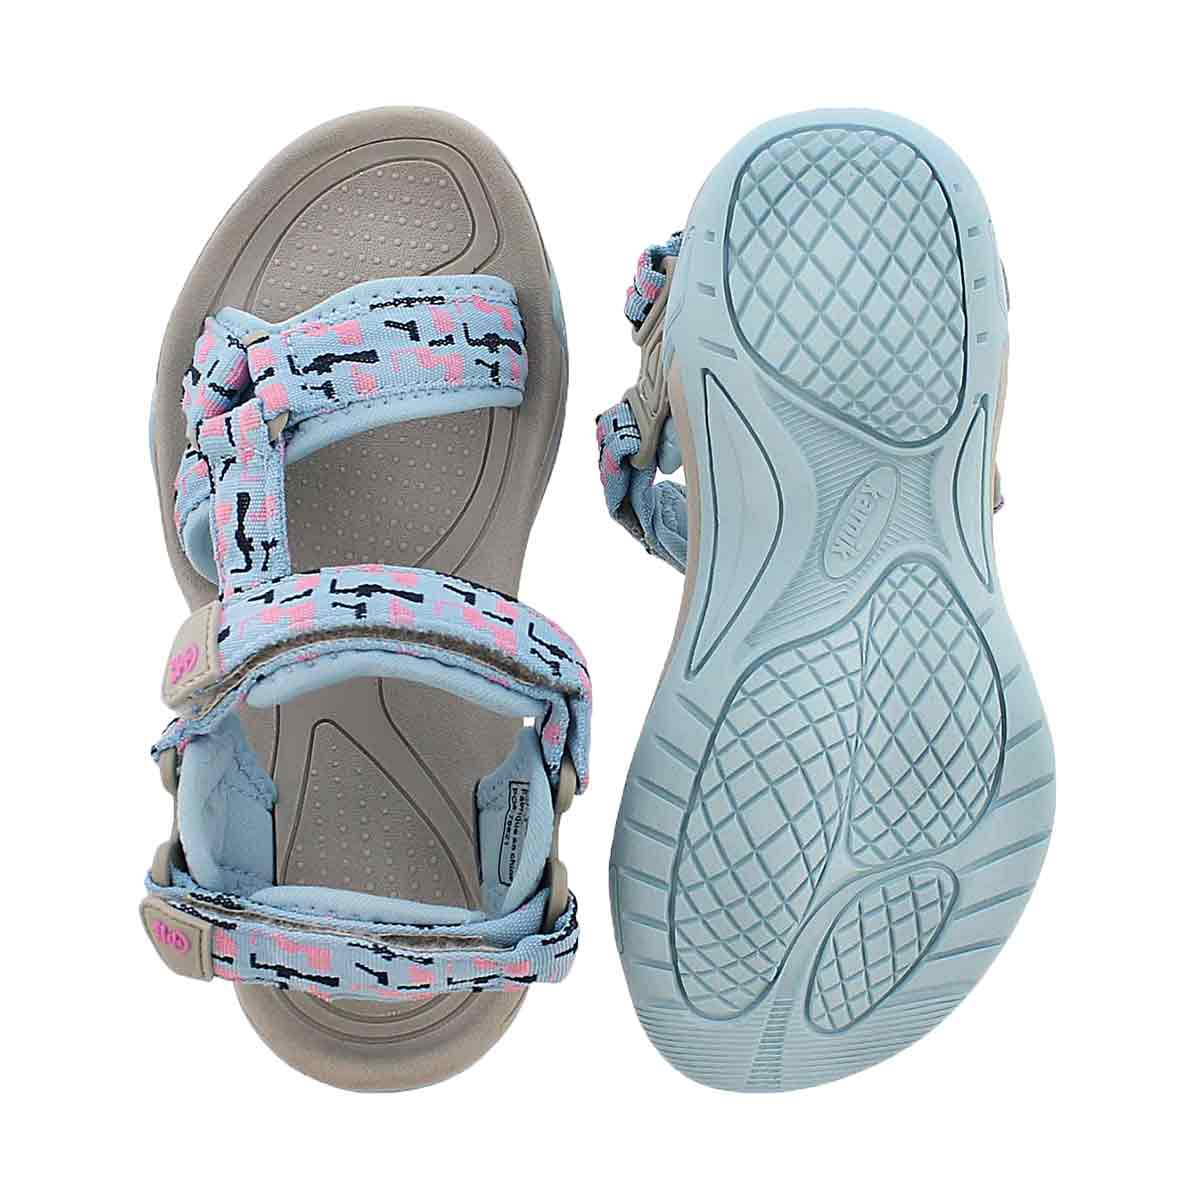 Grls Lowtide light blue 3 strap sandal